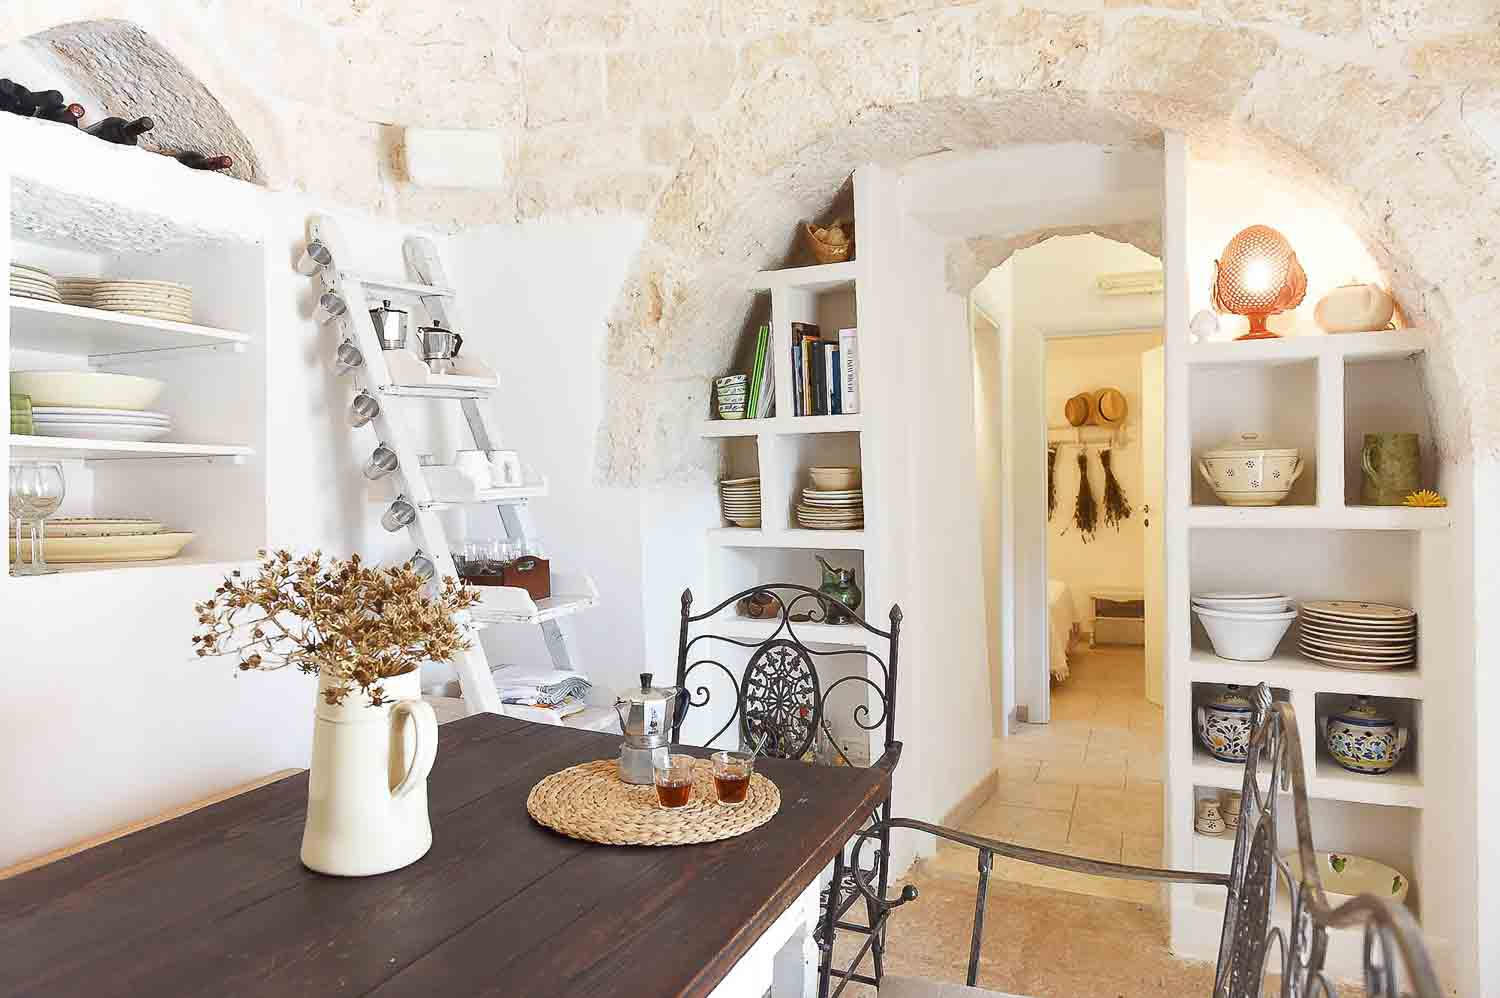 Interior of rental cottage in Cisternino - Apulia, Italy